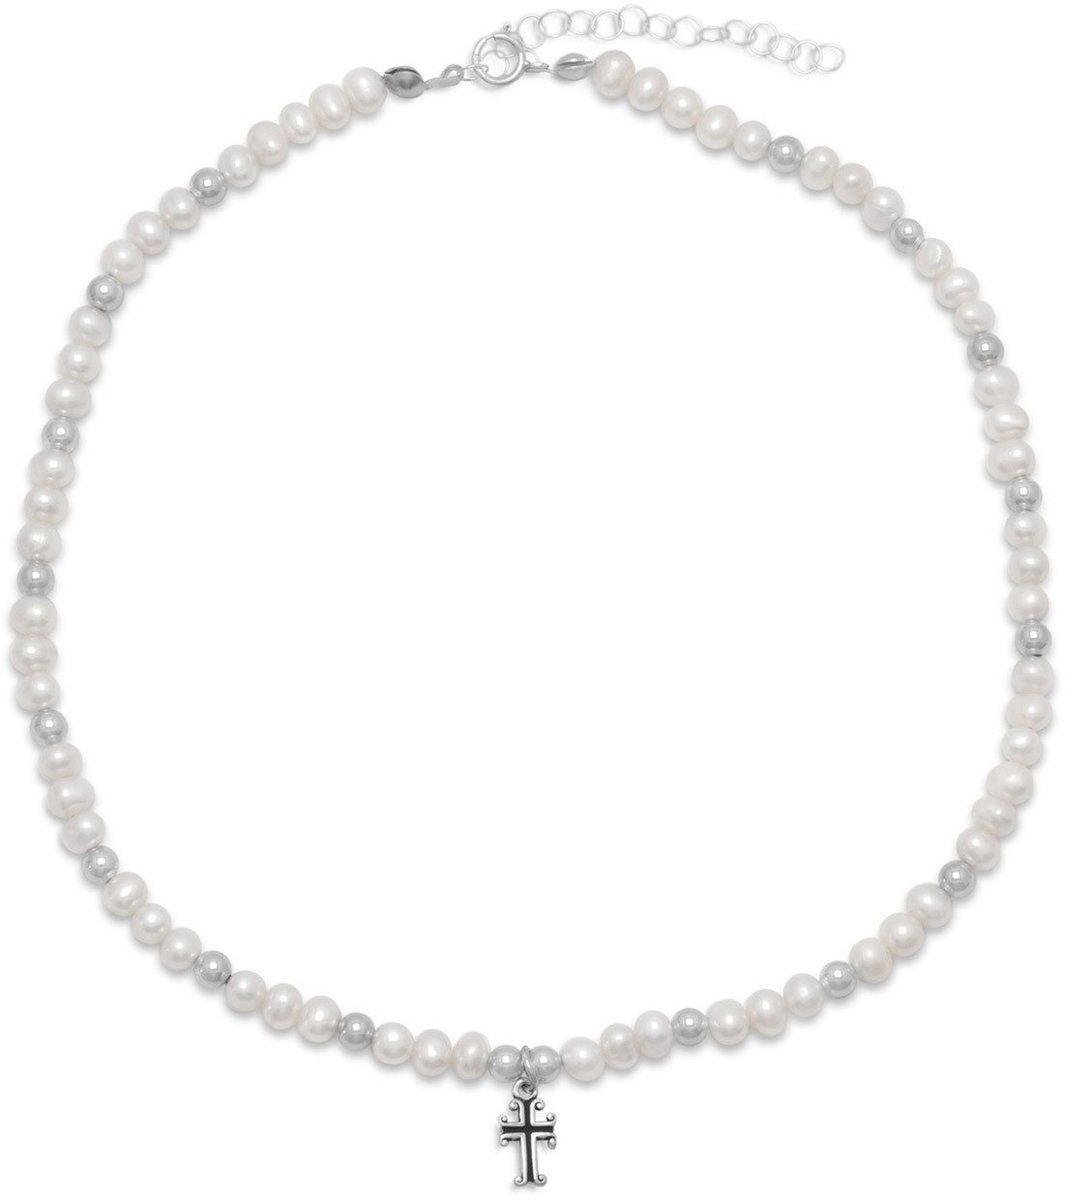 "13"" +2"" Extension  White Cultured Freshwater Pearl and Silver Bead Necklace with Cross Drop 925 Sterling Silver"